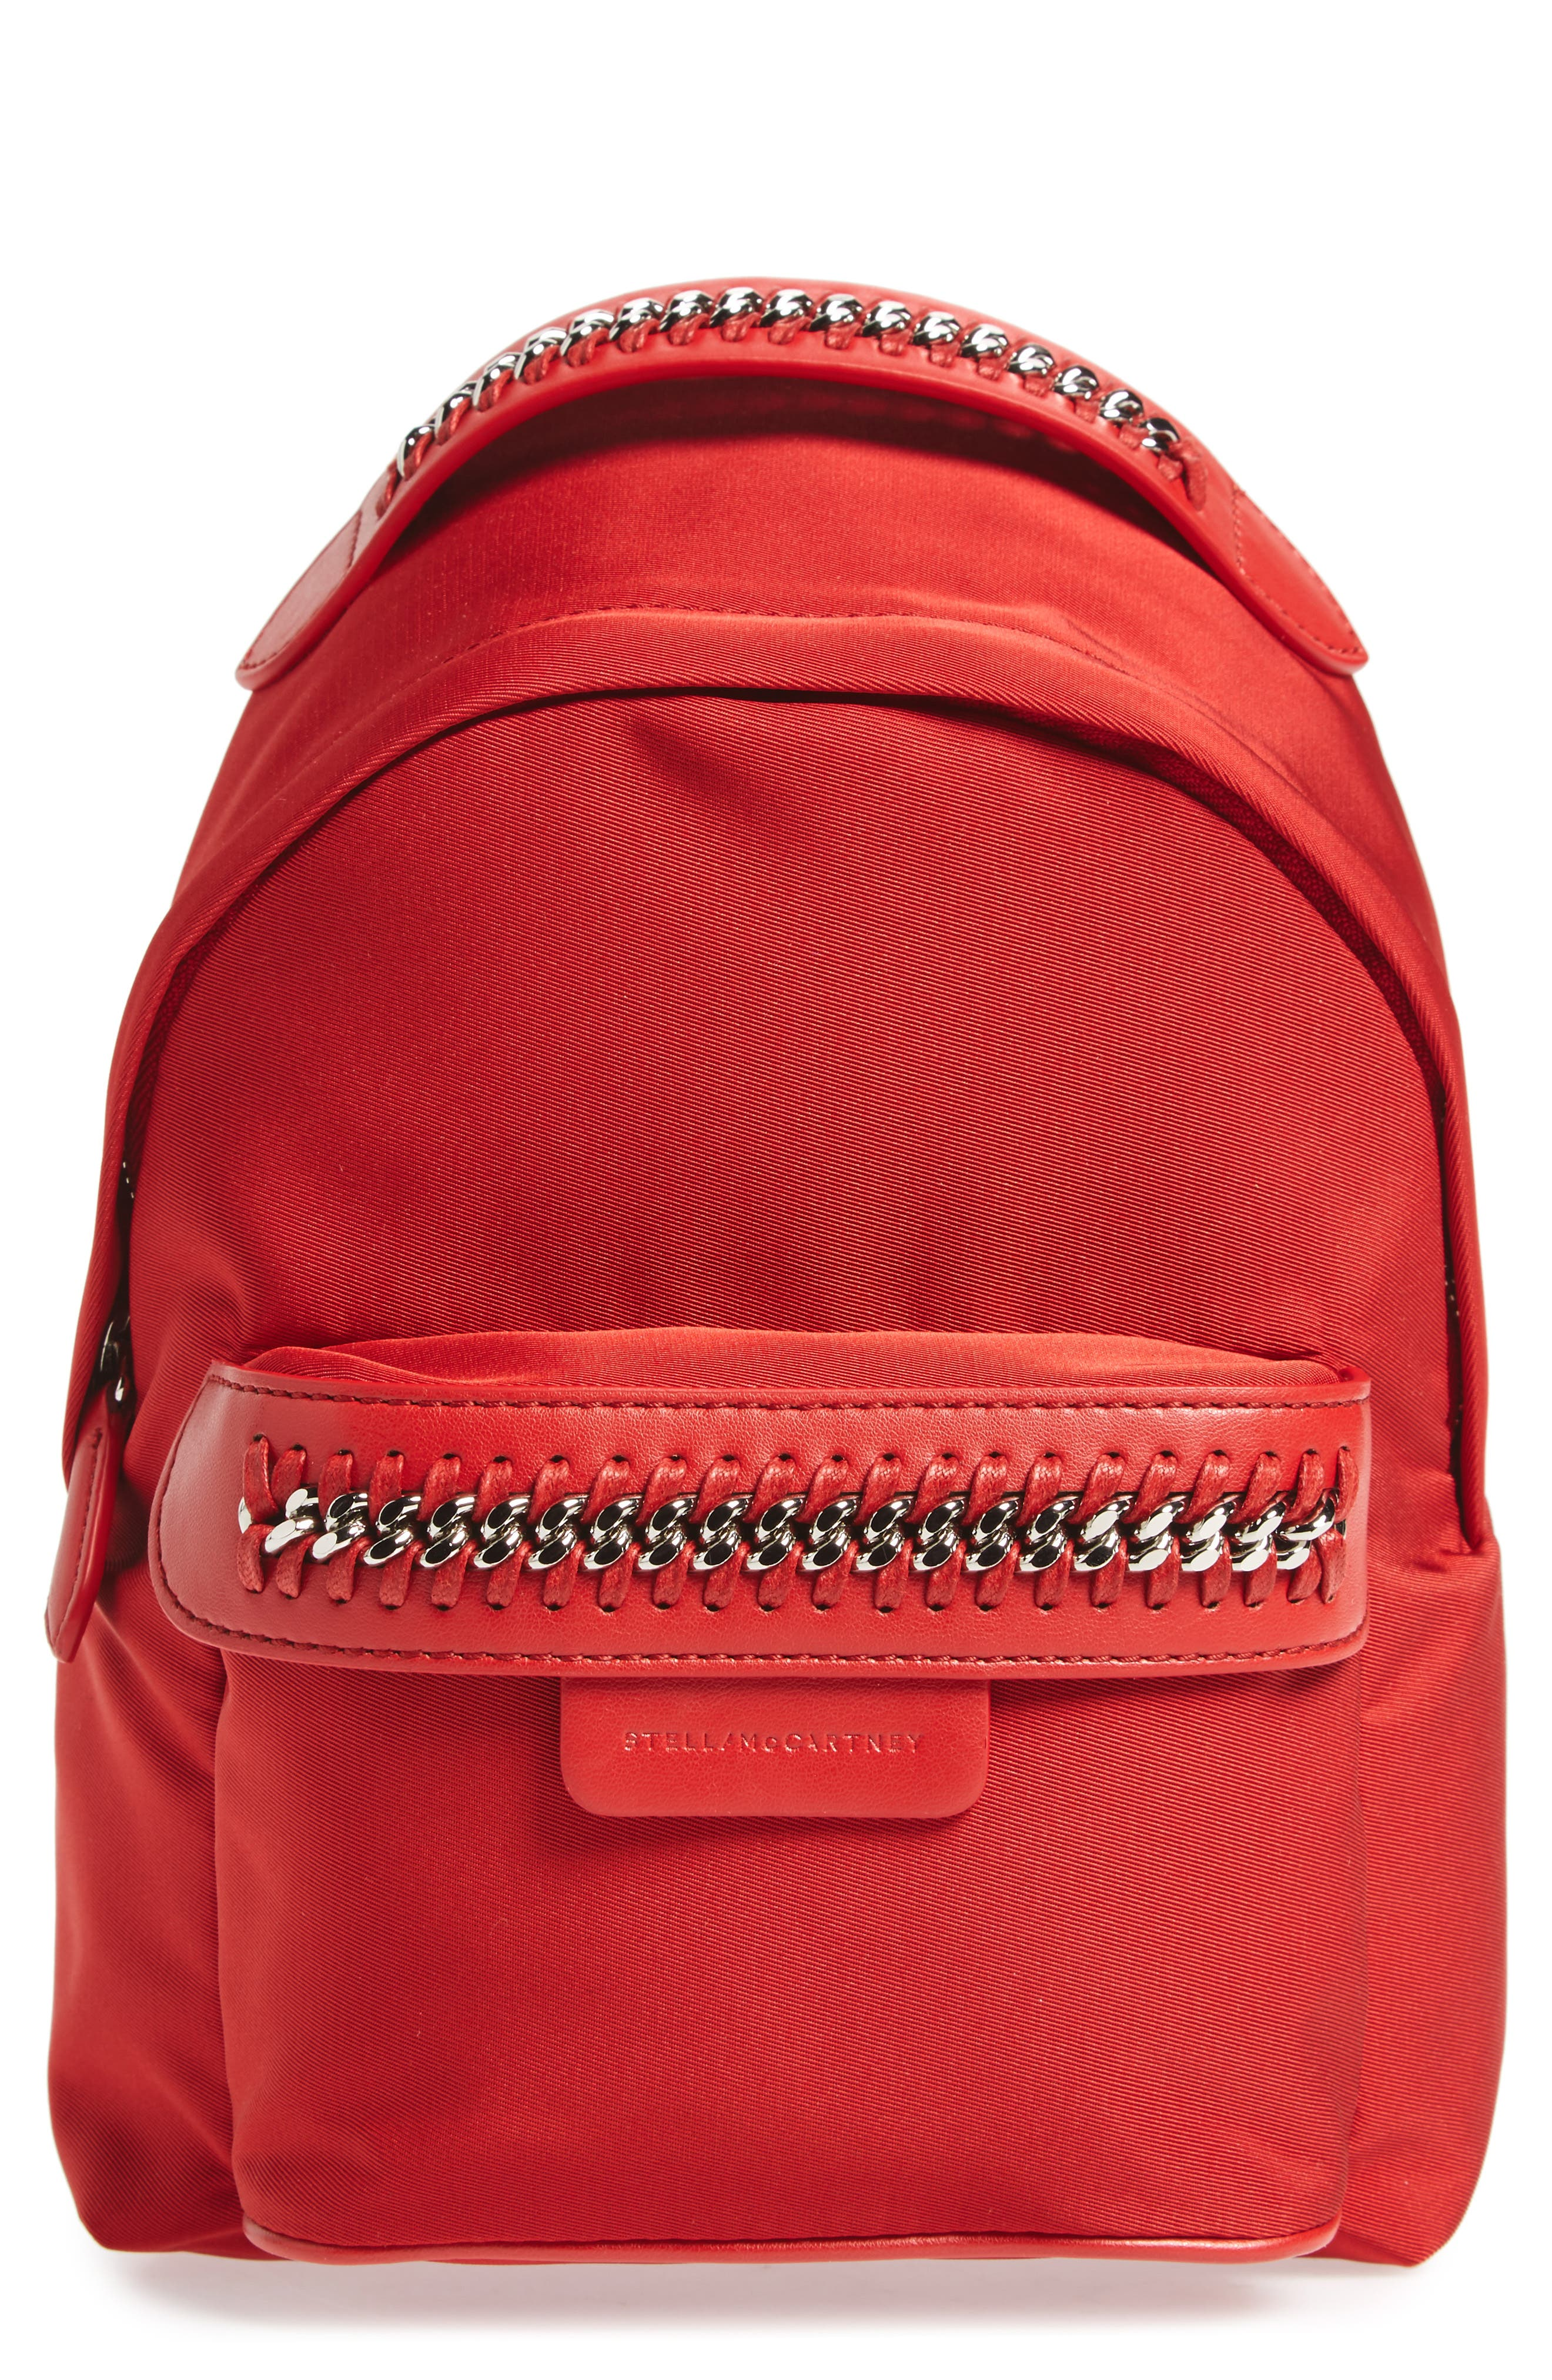 Stella McCartney Mini Falabella Nylon Backpack